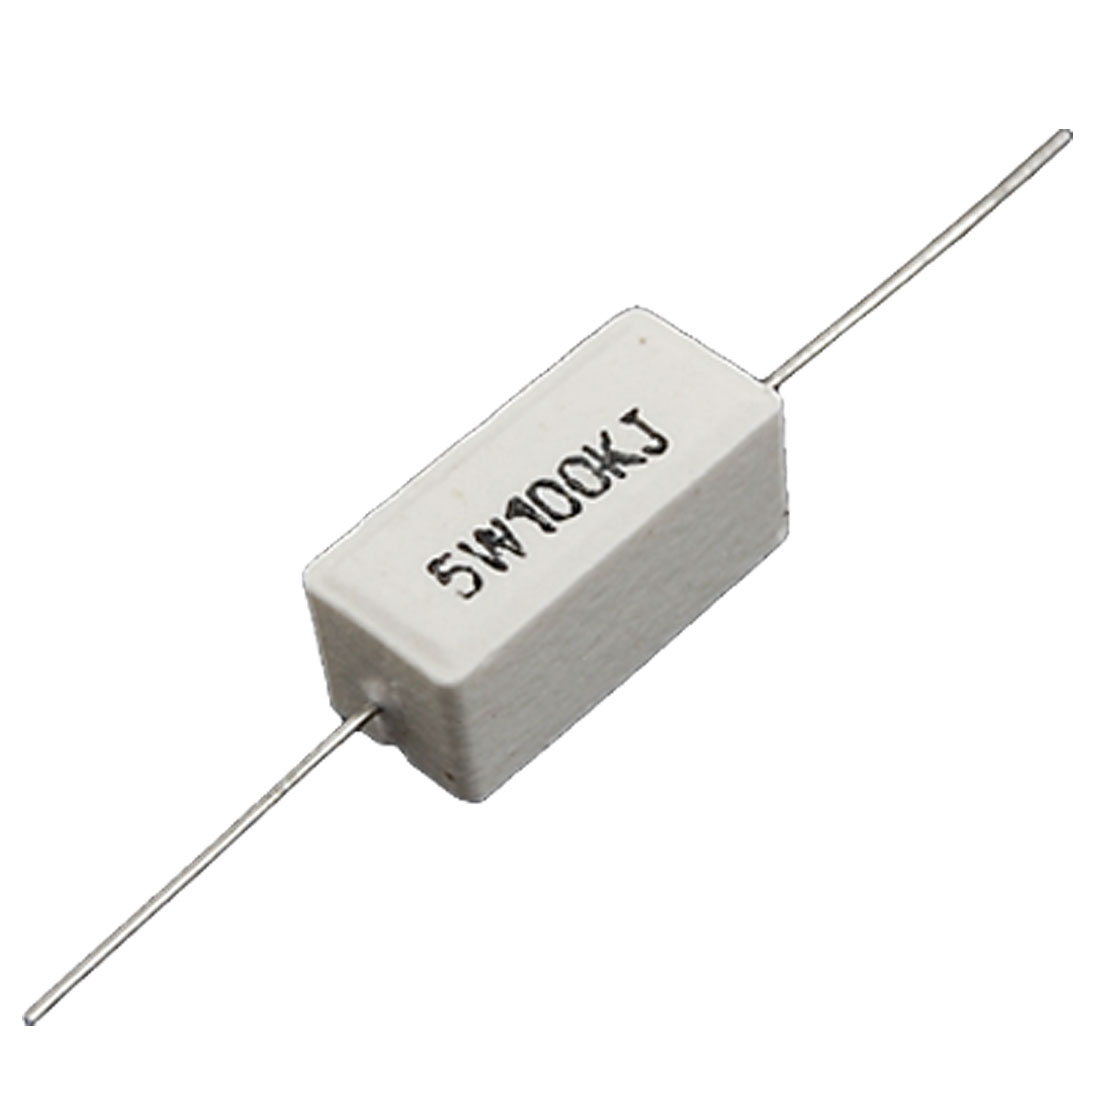 10 Pcs Axial Ceramic Cement Power Resistors 100K Ohm 5W Watt 5%